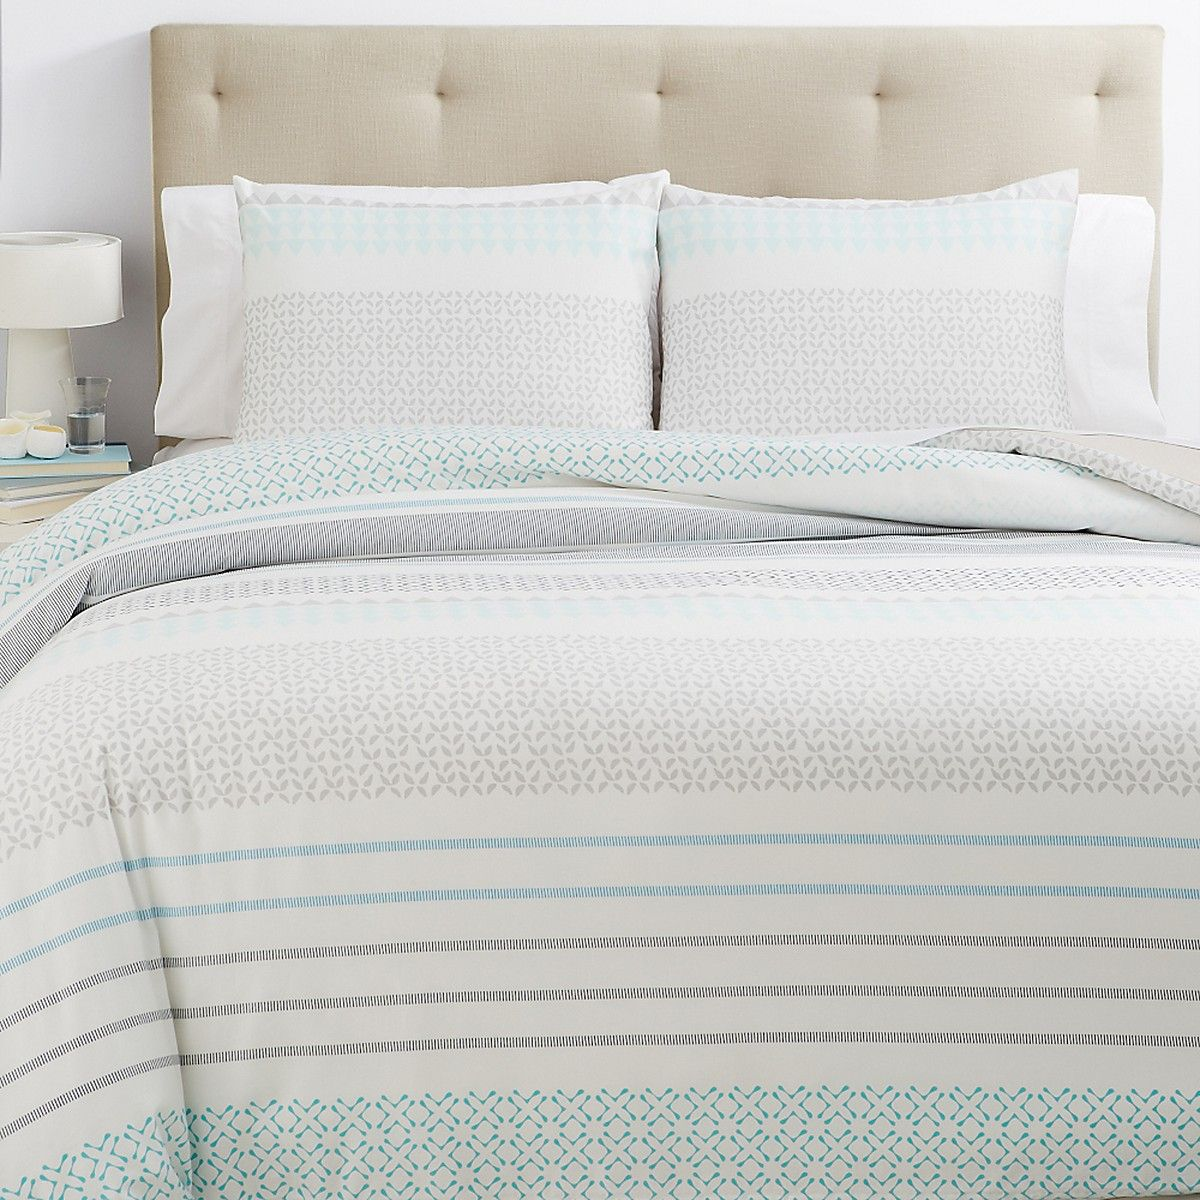 blissliving home mataveri collection  bloomingdale's  belfort  - blissliving home mataveri collection  bloomingdale's